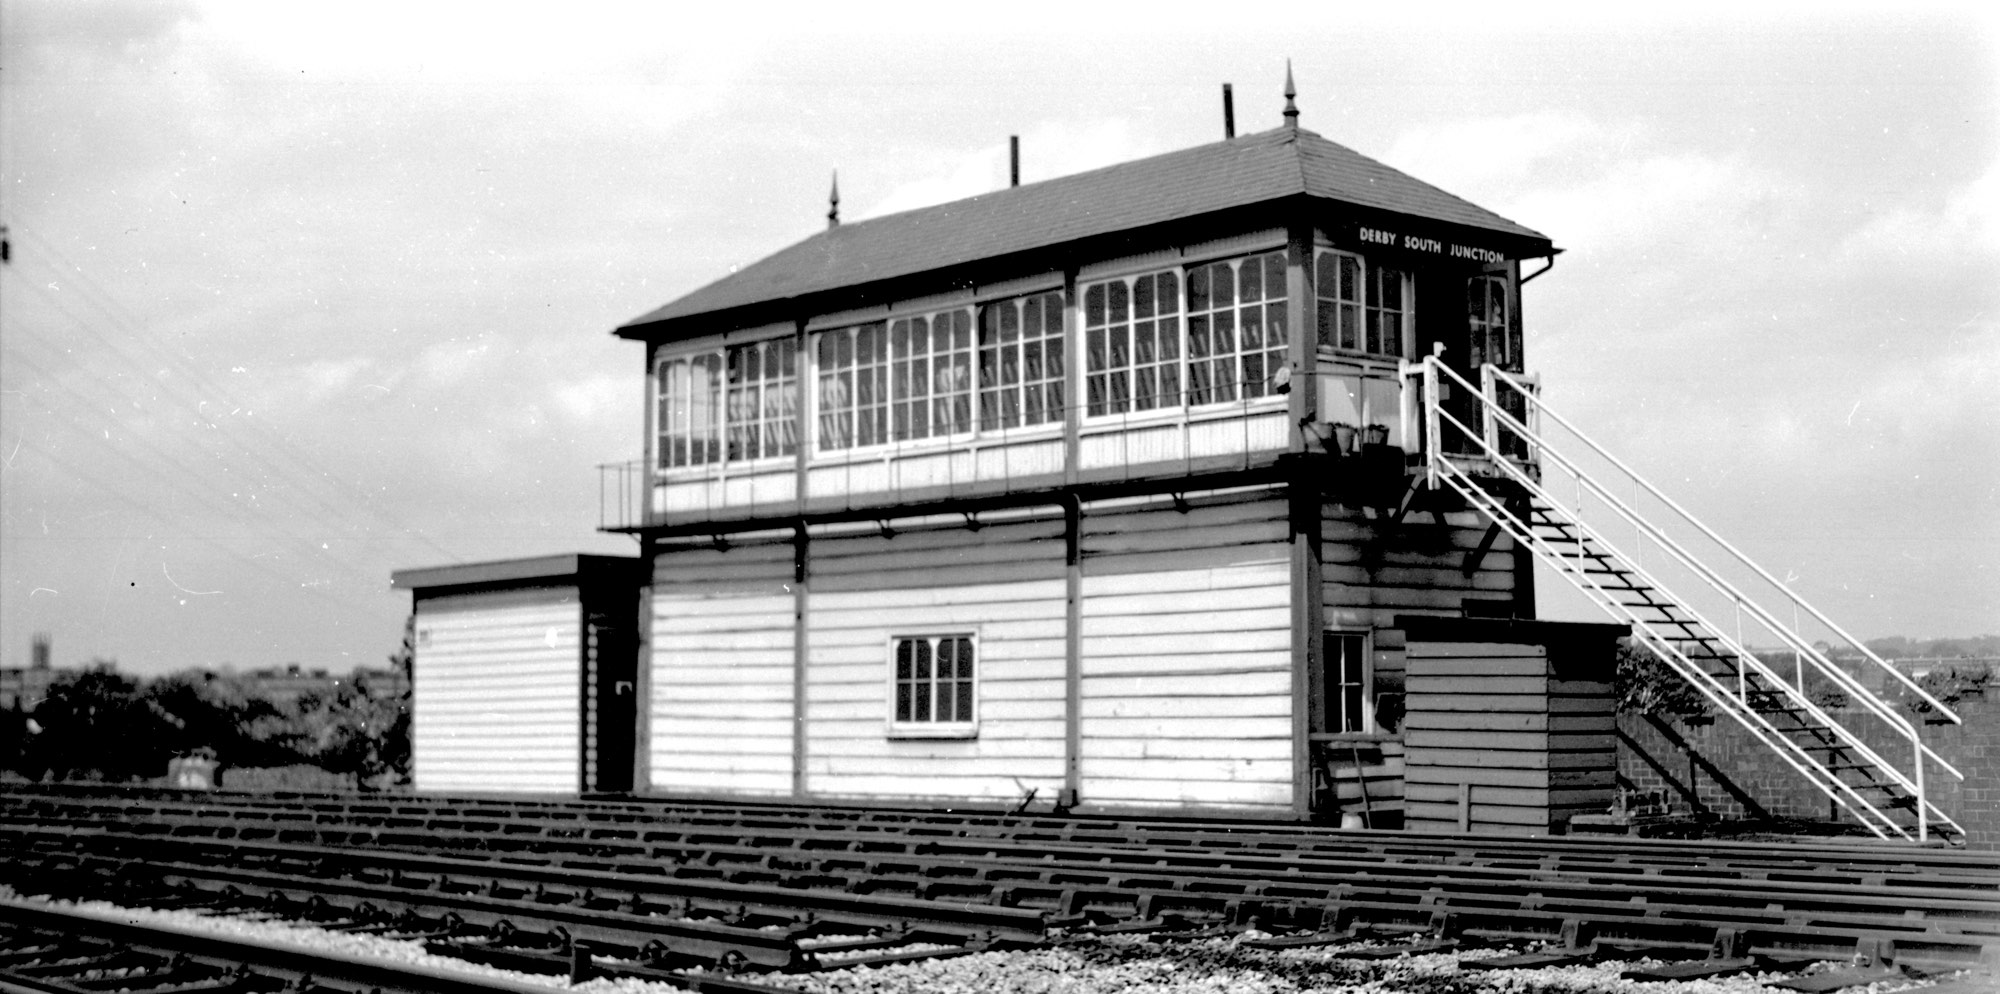 Derby South Junction signal box